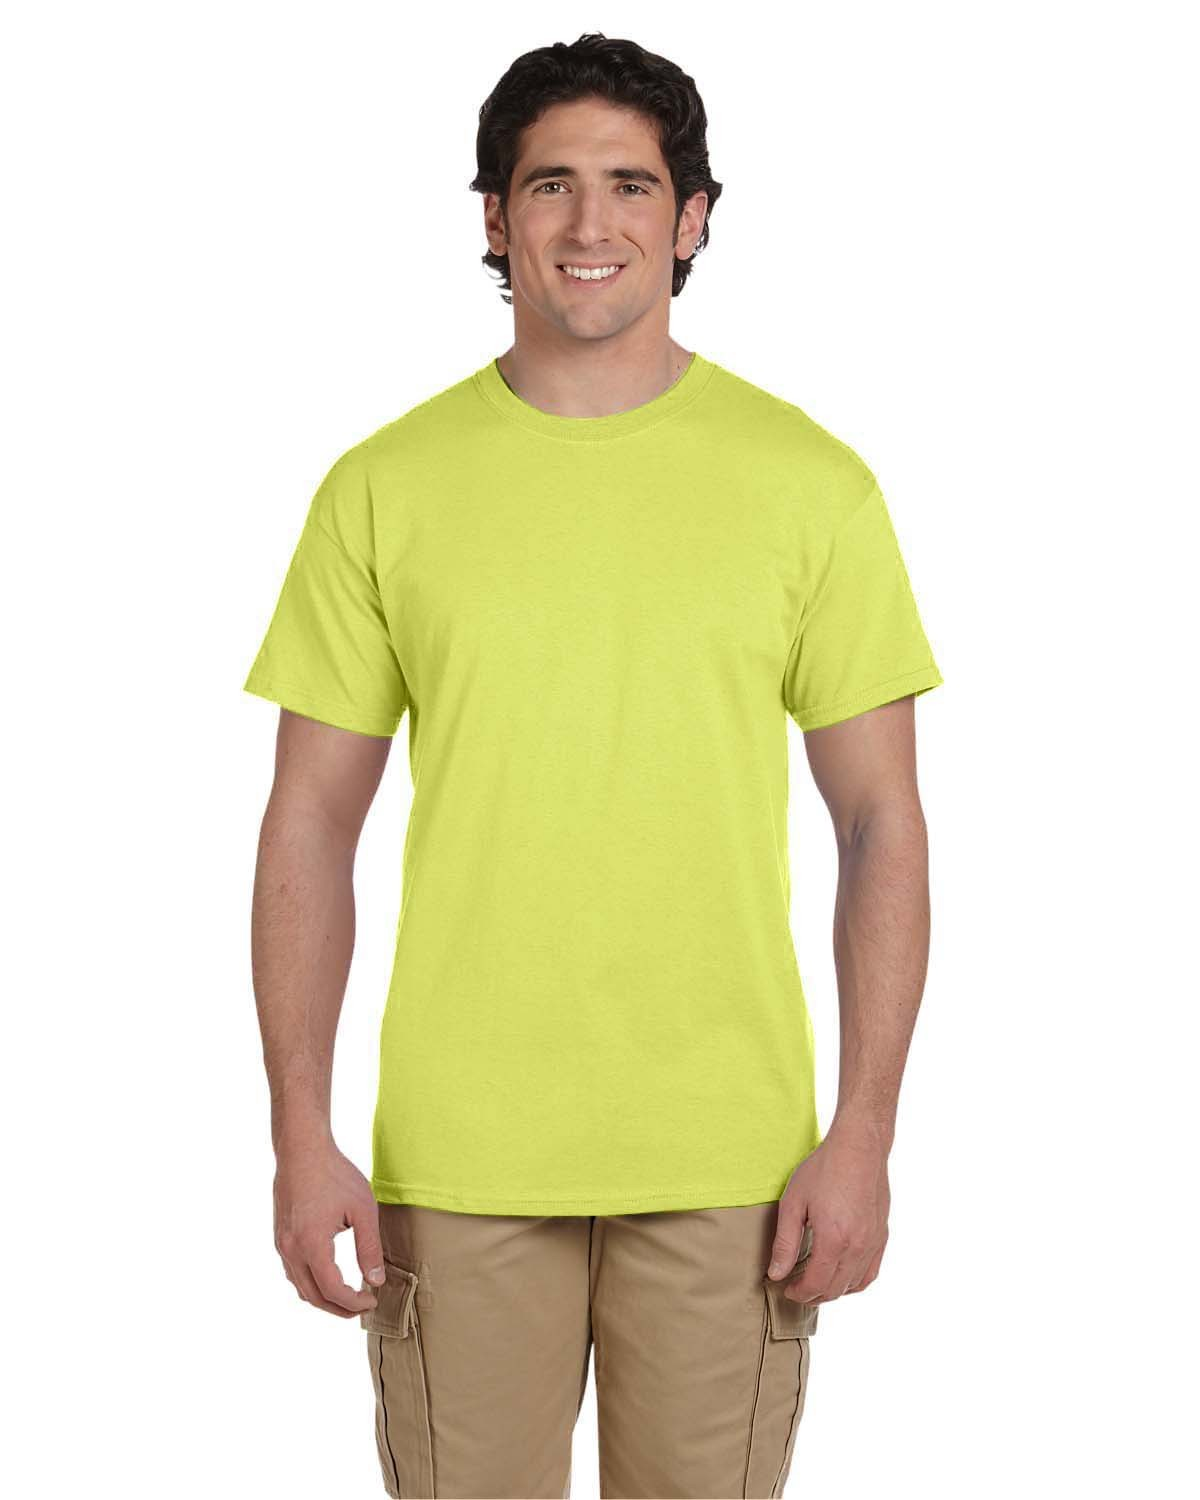 3931 Fruit of the Loom NEON YELLOW